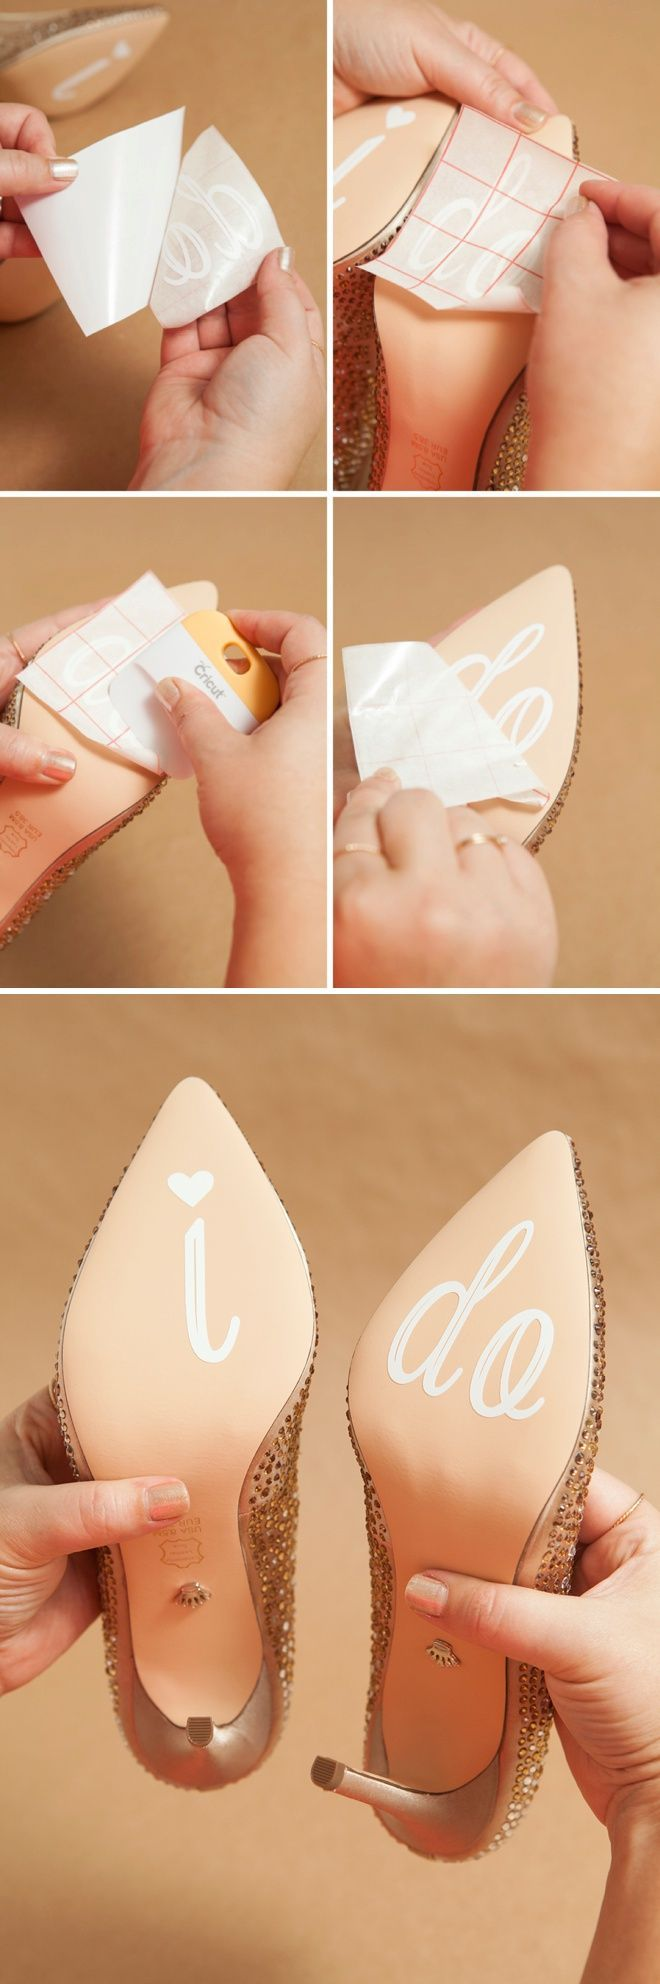 "DIY Idea! Not only is adding ""I Do"" to your wedding shoes a simple touch to make your wedding accessories unique, but it also makes for a GREAT photo op!"